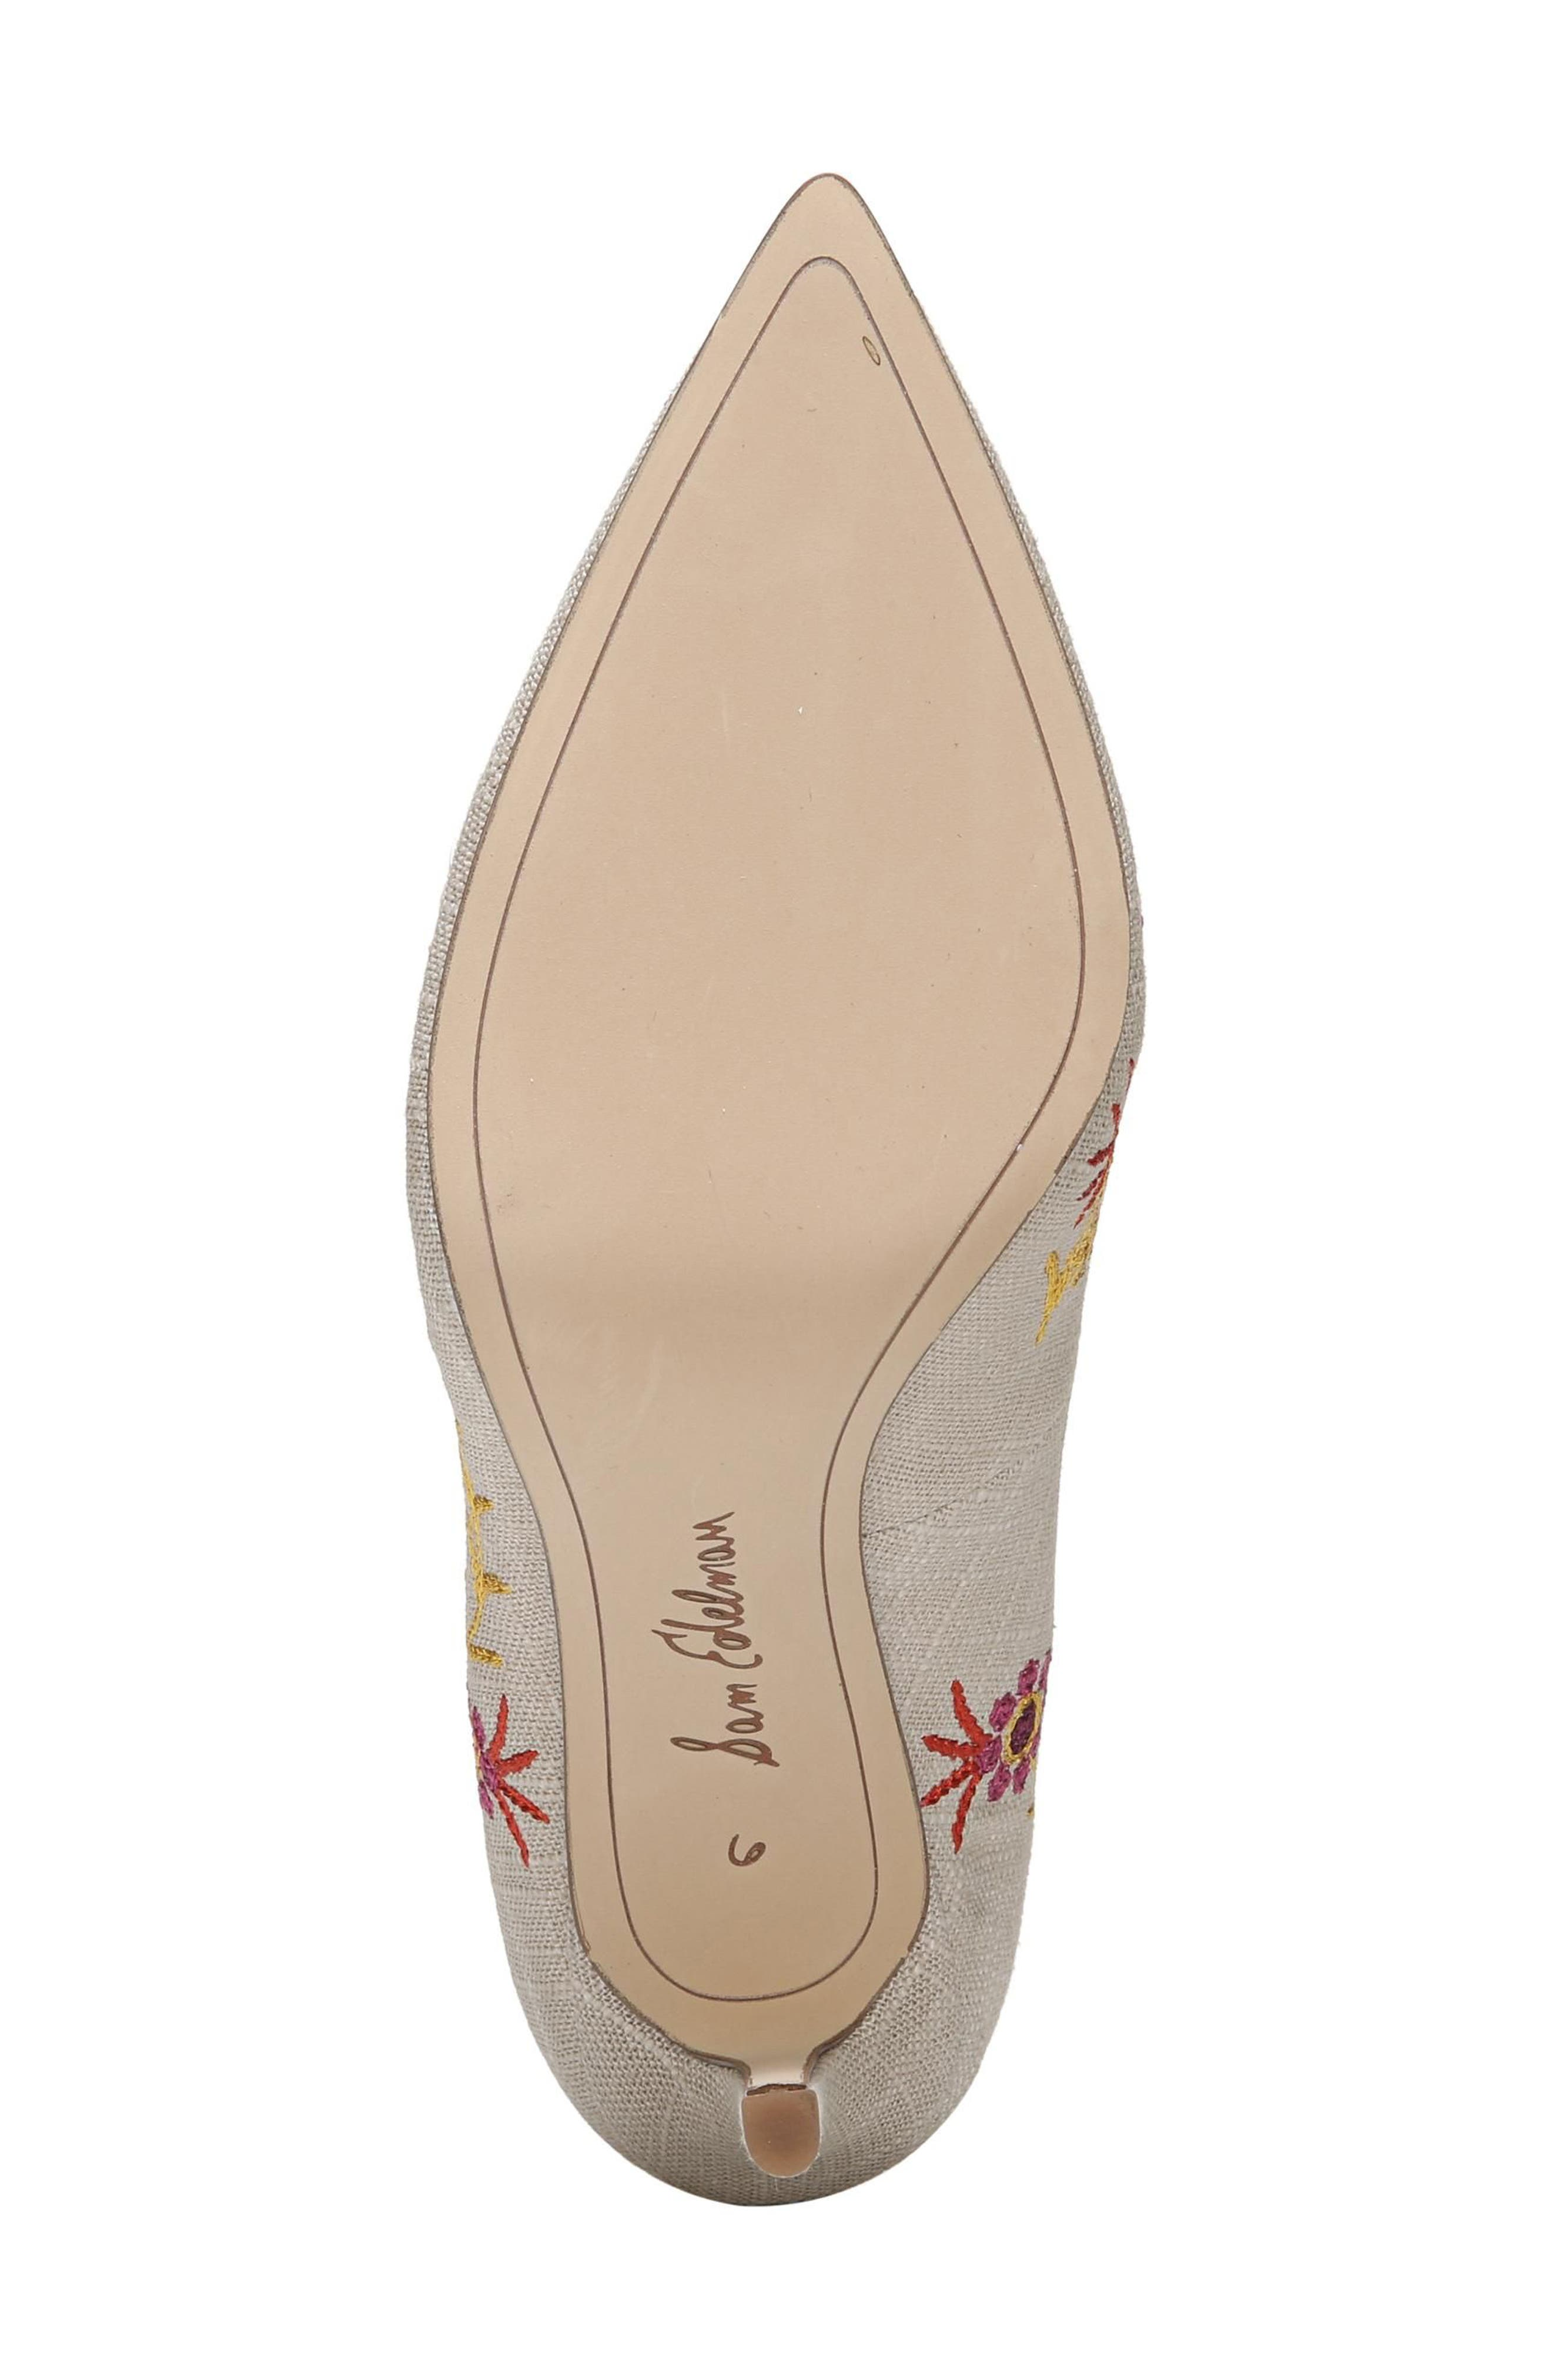 Hazel Pointy Toe Pump,                             Alternate thumbnail 6, color,                             Yellow Embroidery Suede